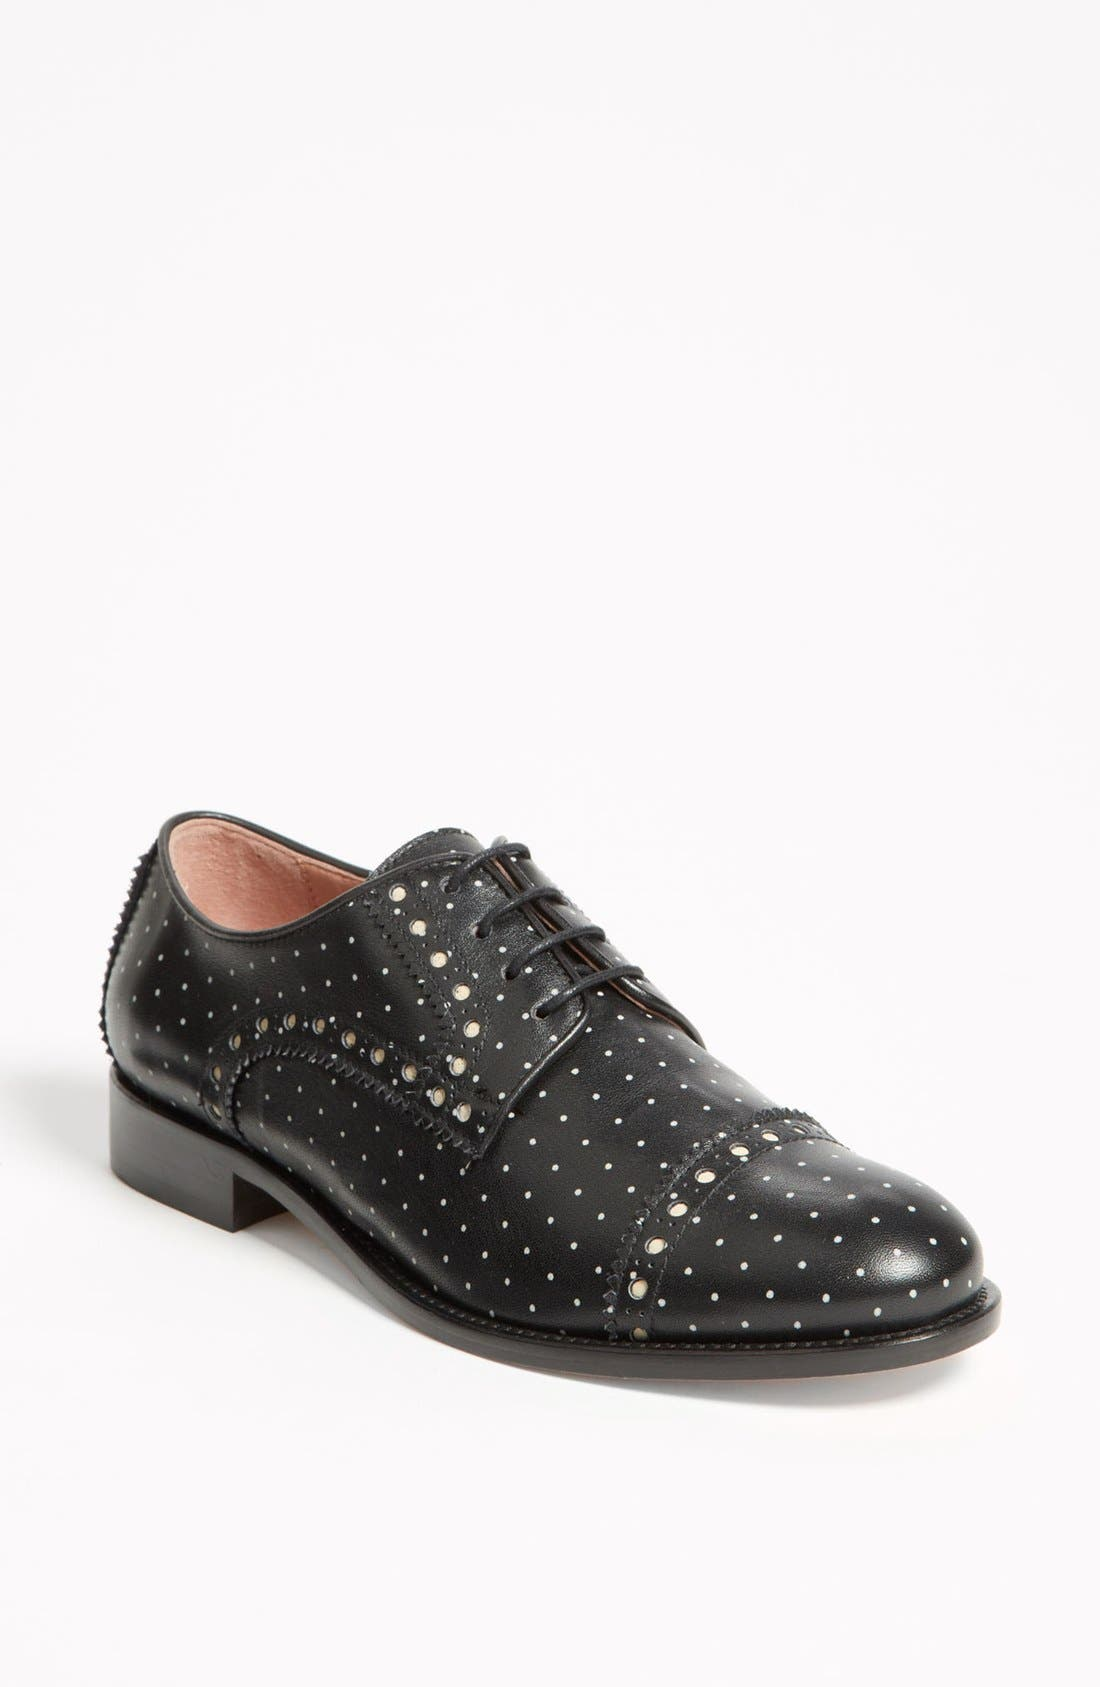 Alternate Image 1 Selected - RED Valentino 'Polka Dot' Oxford